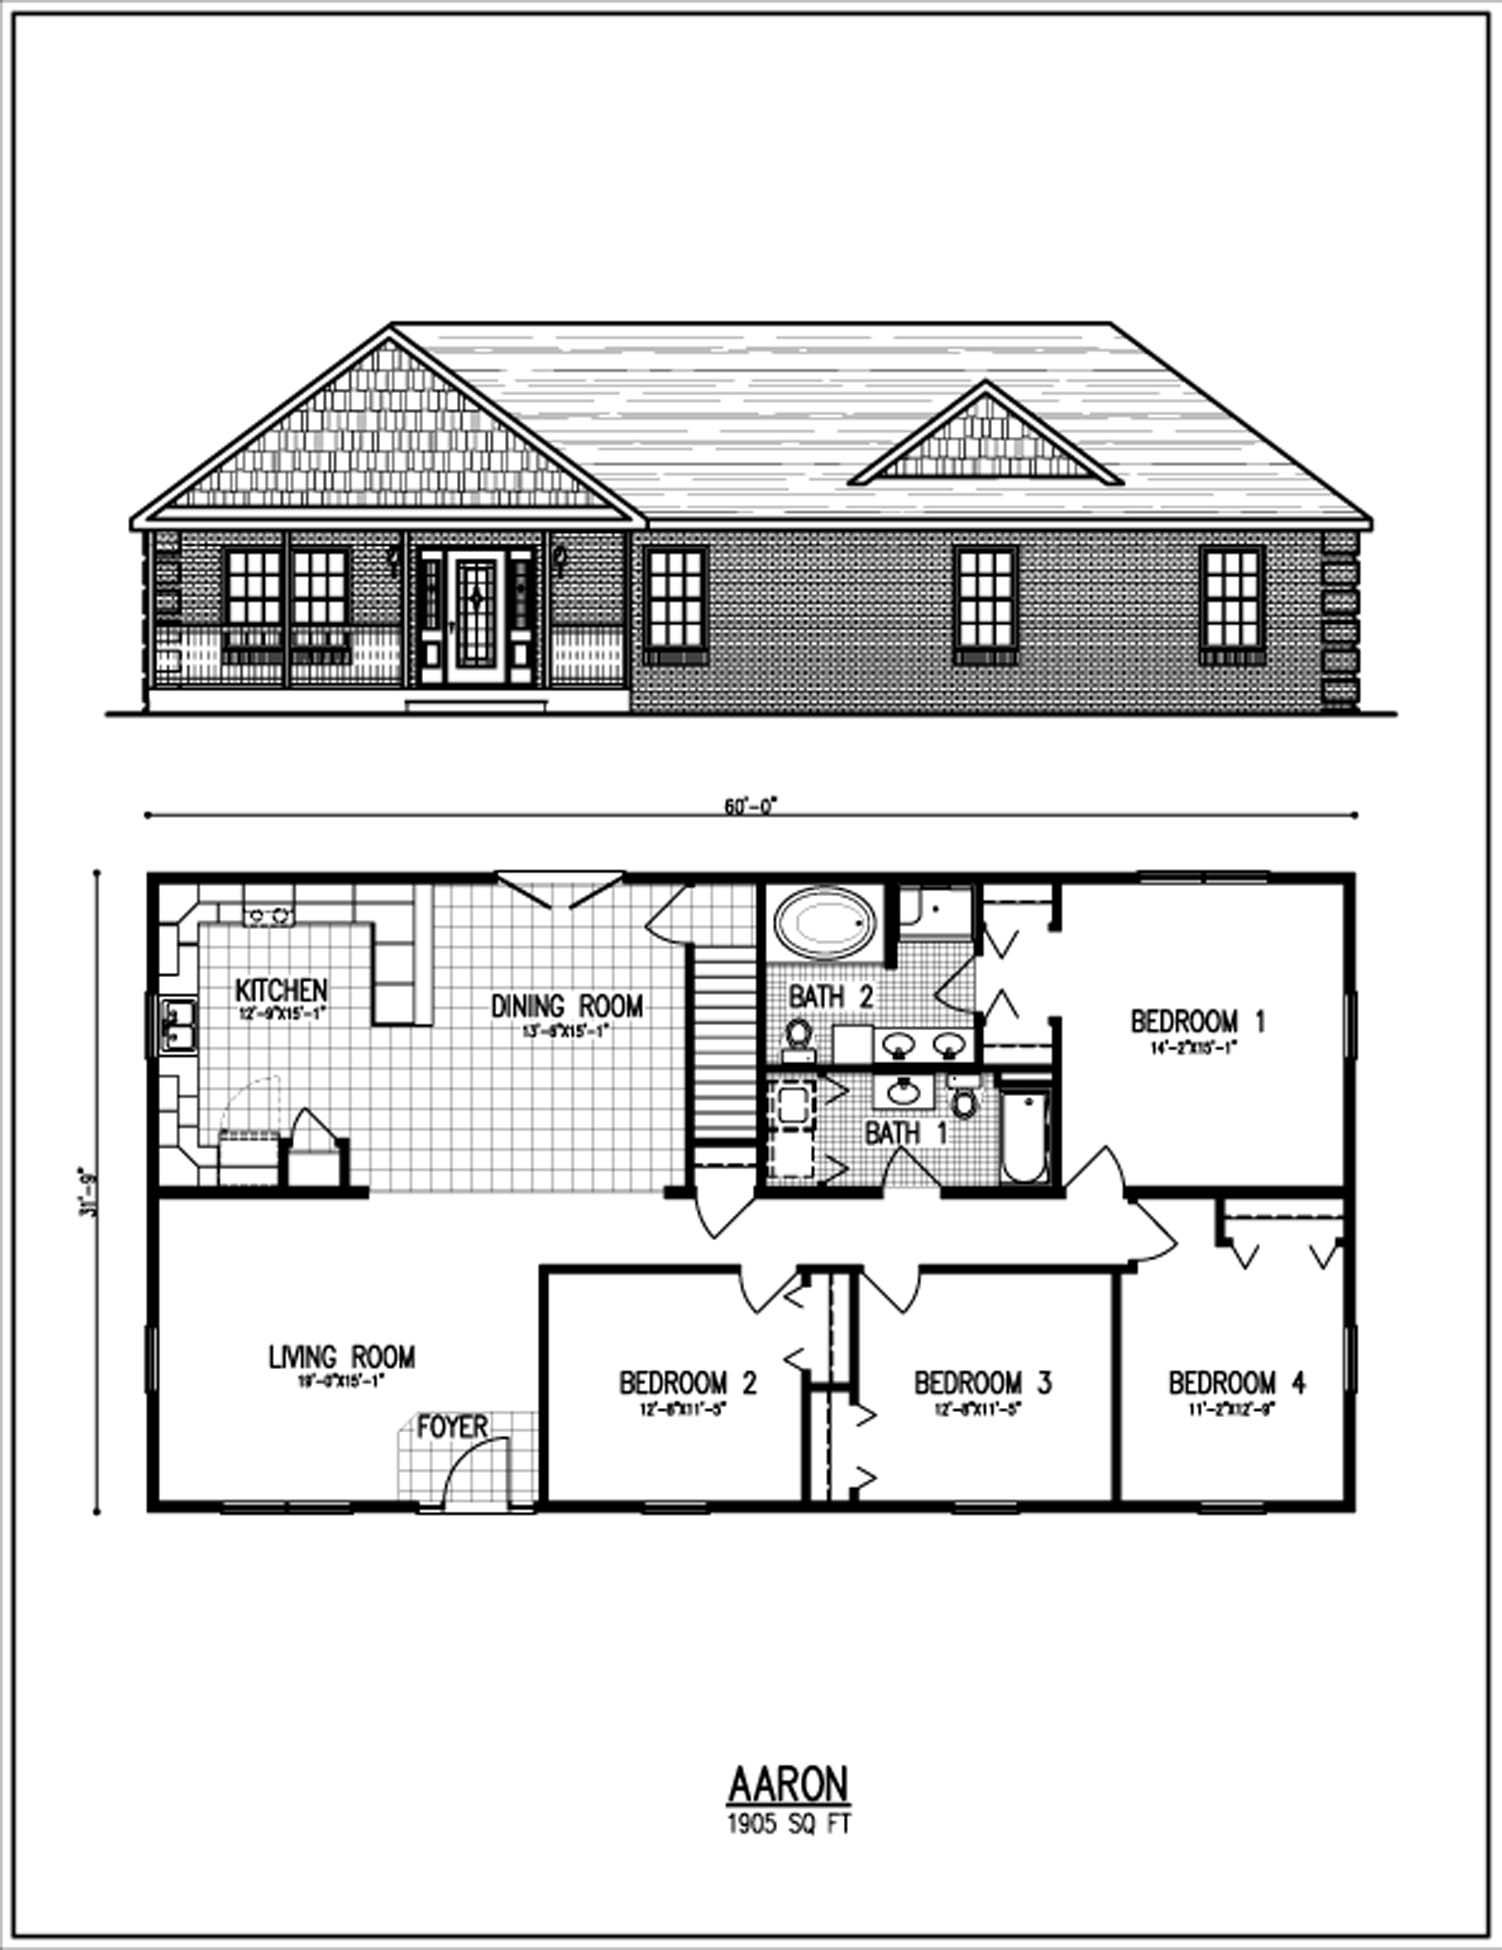 All american homes floorplan center staffordcape for Small ranch house designs